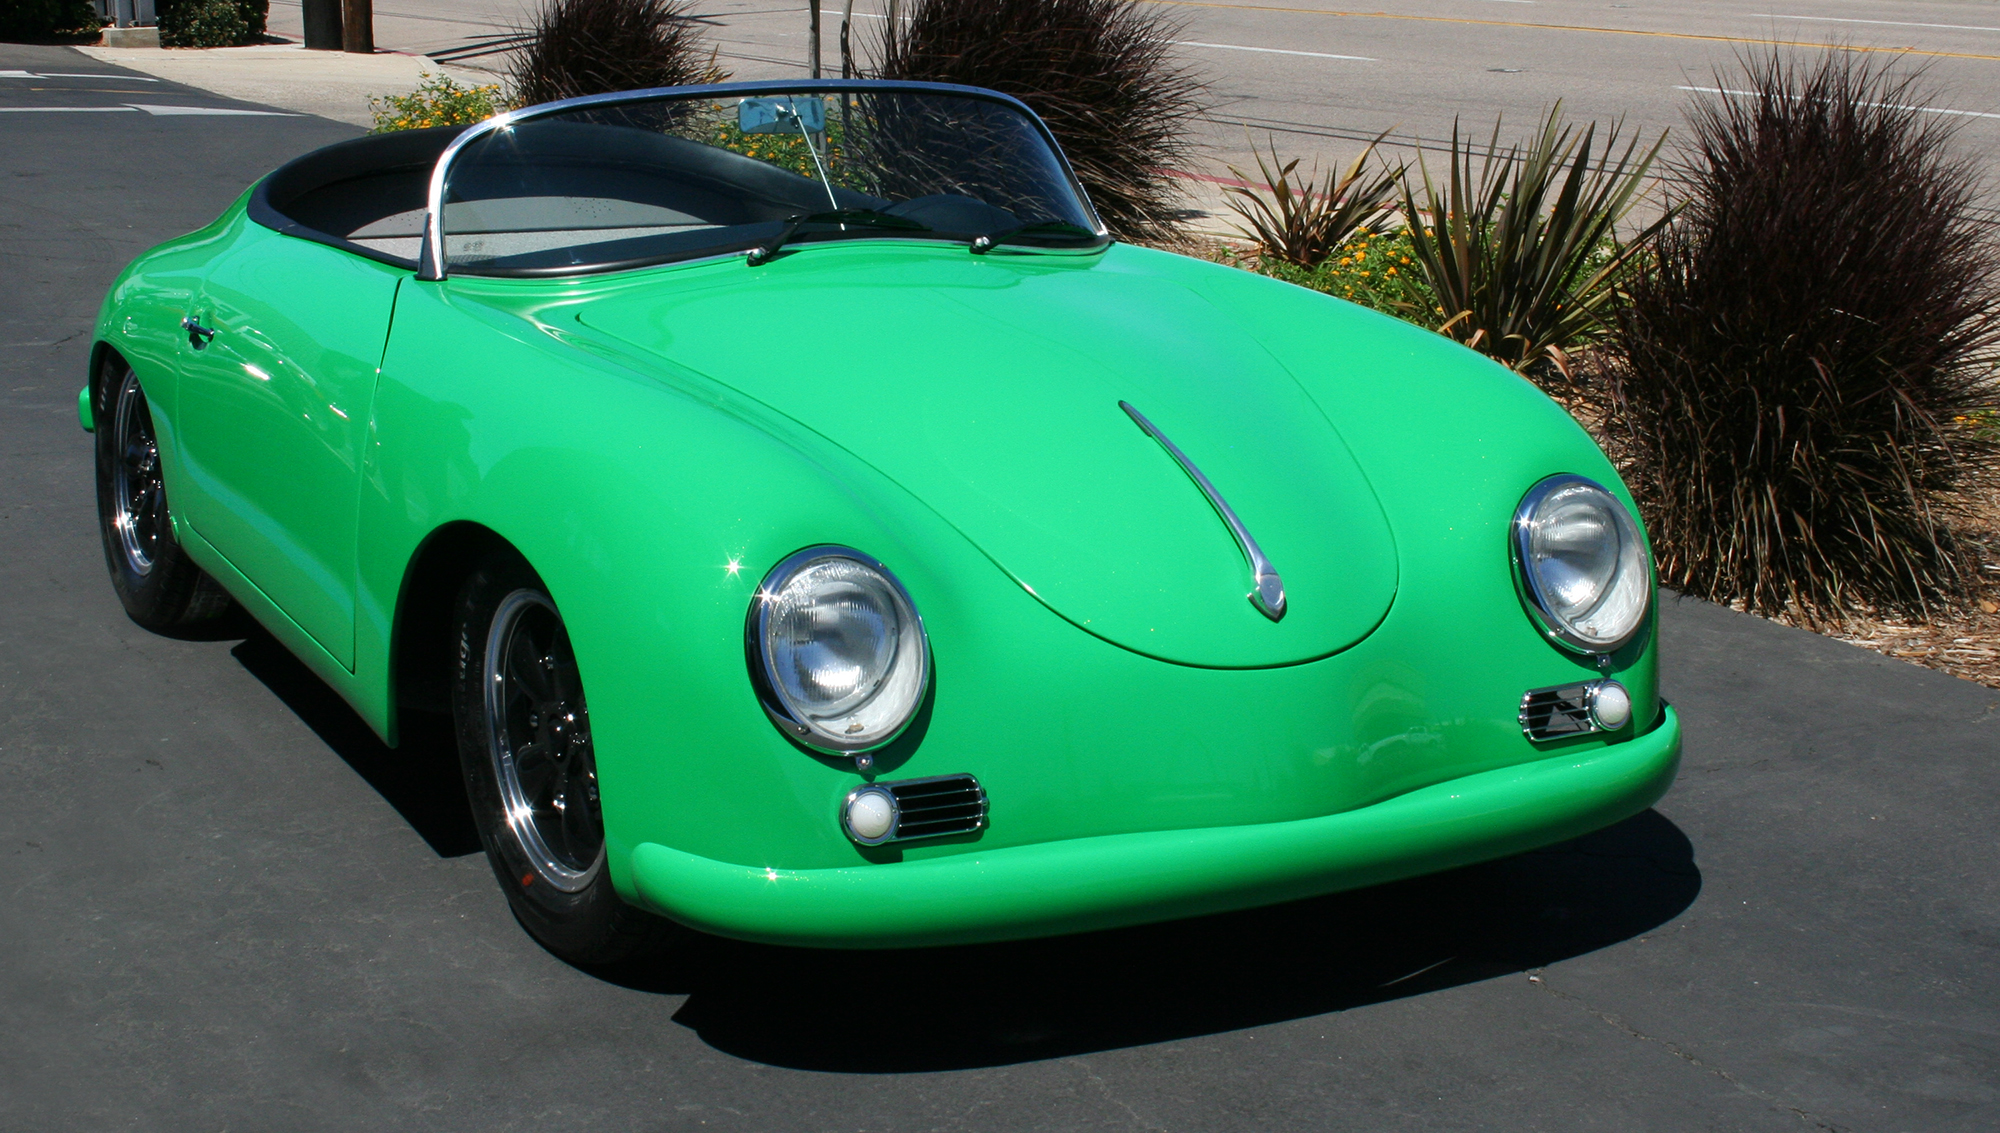 Green RW Speedster Electric